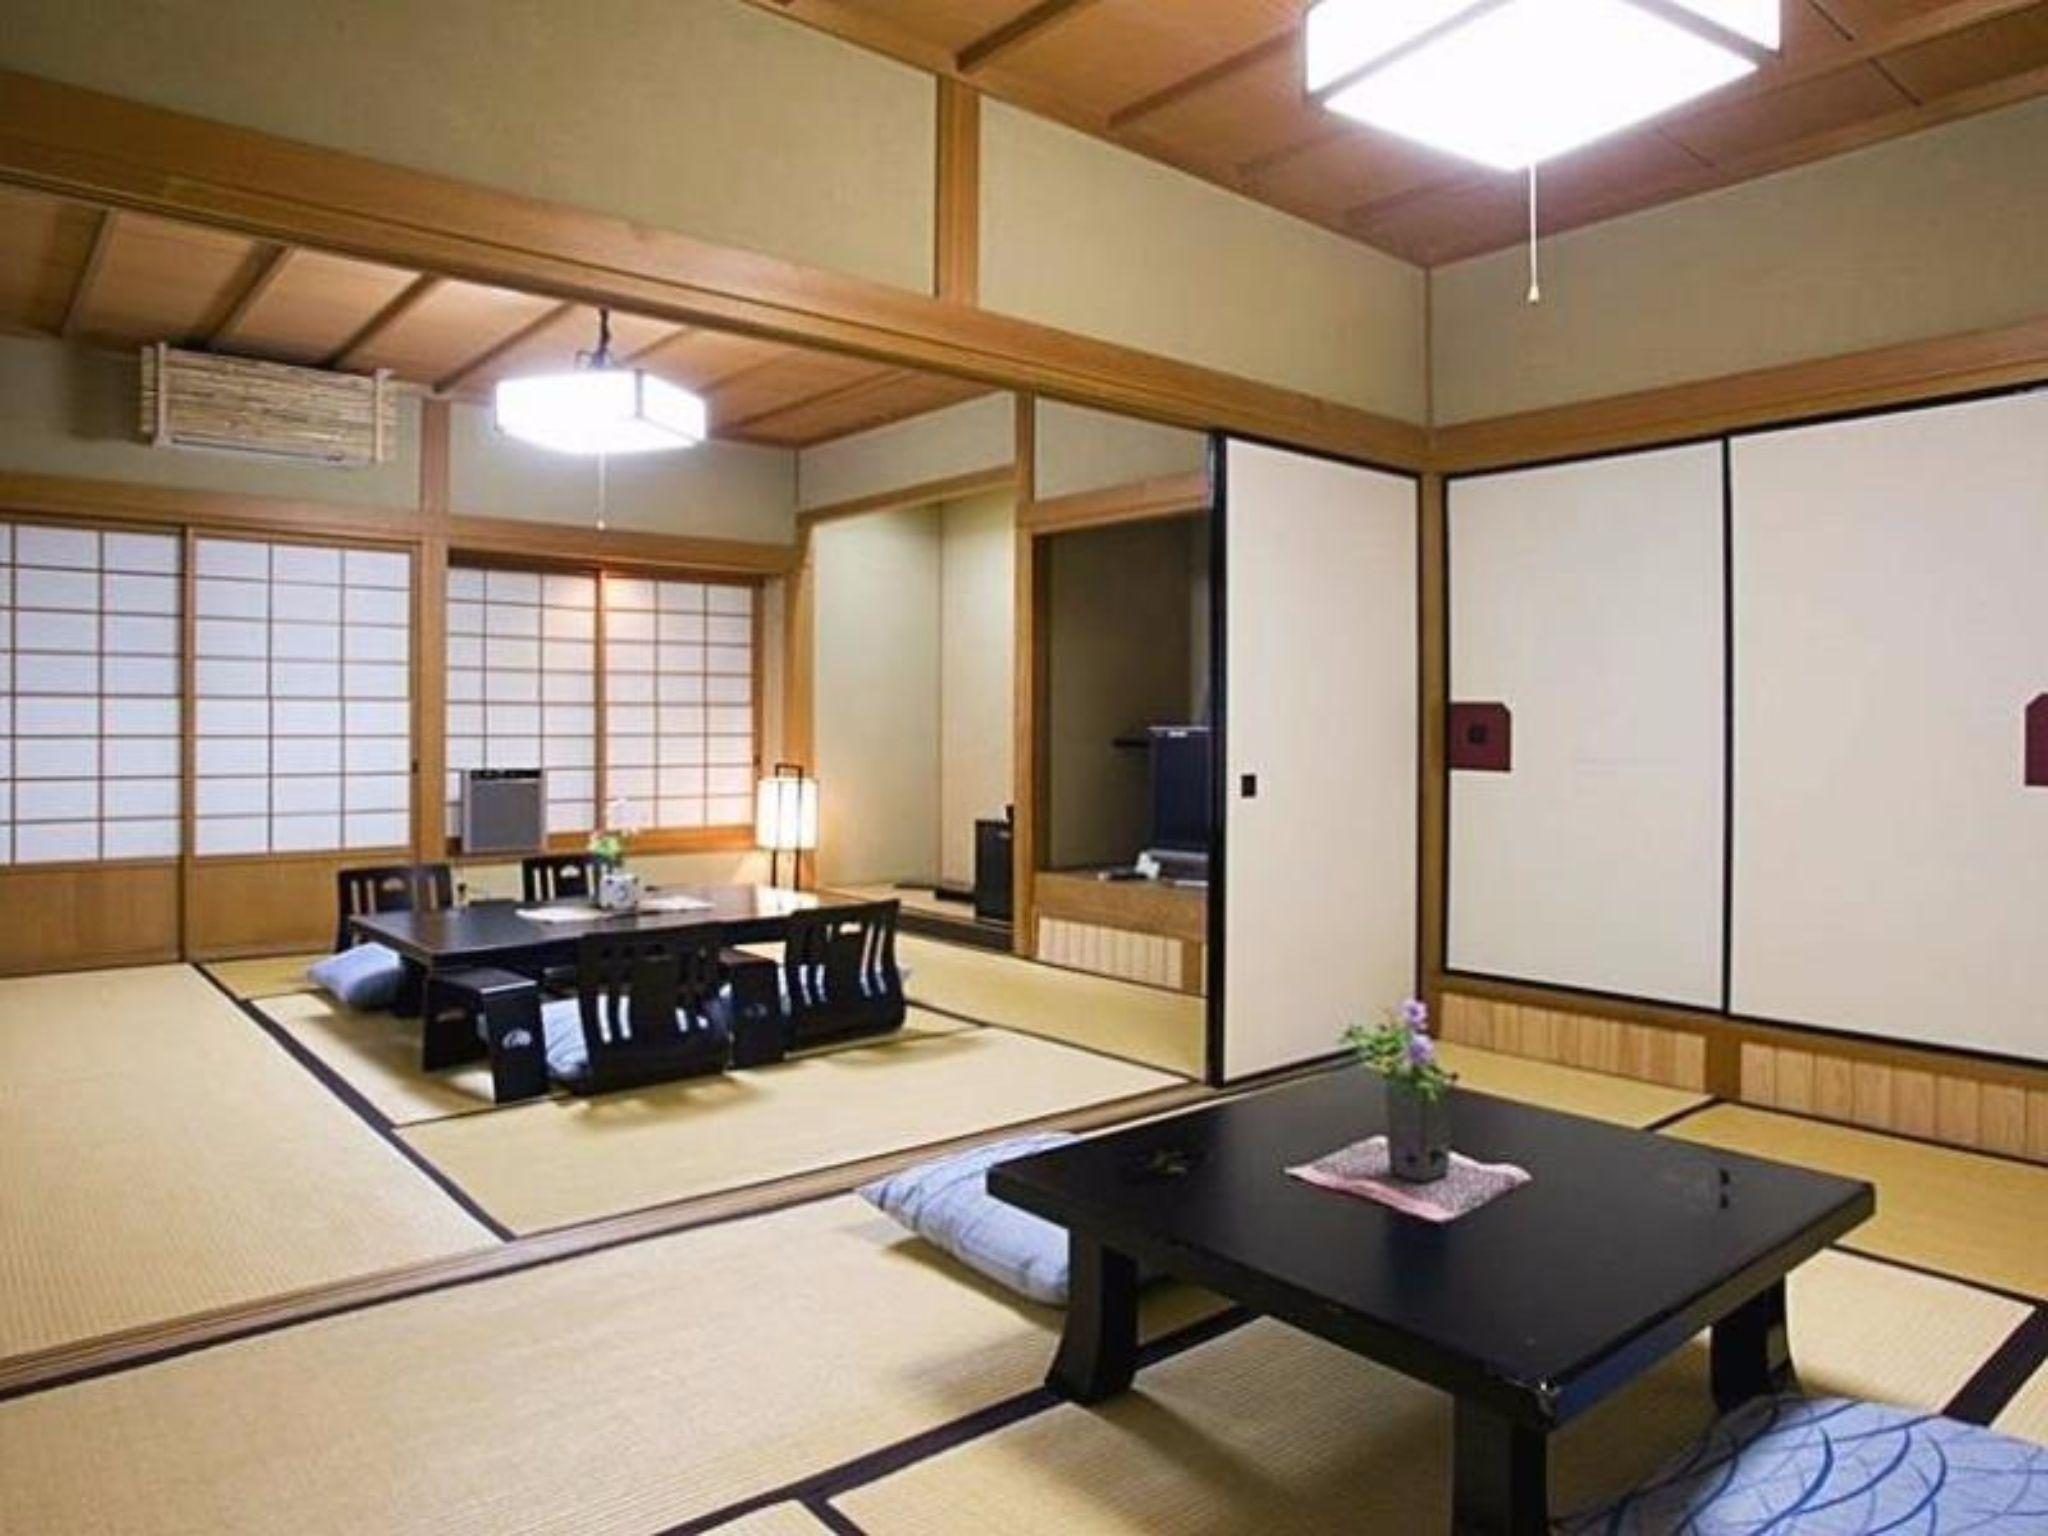 和室 スーペリア (Superior Japanese Style Room)